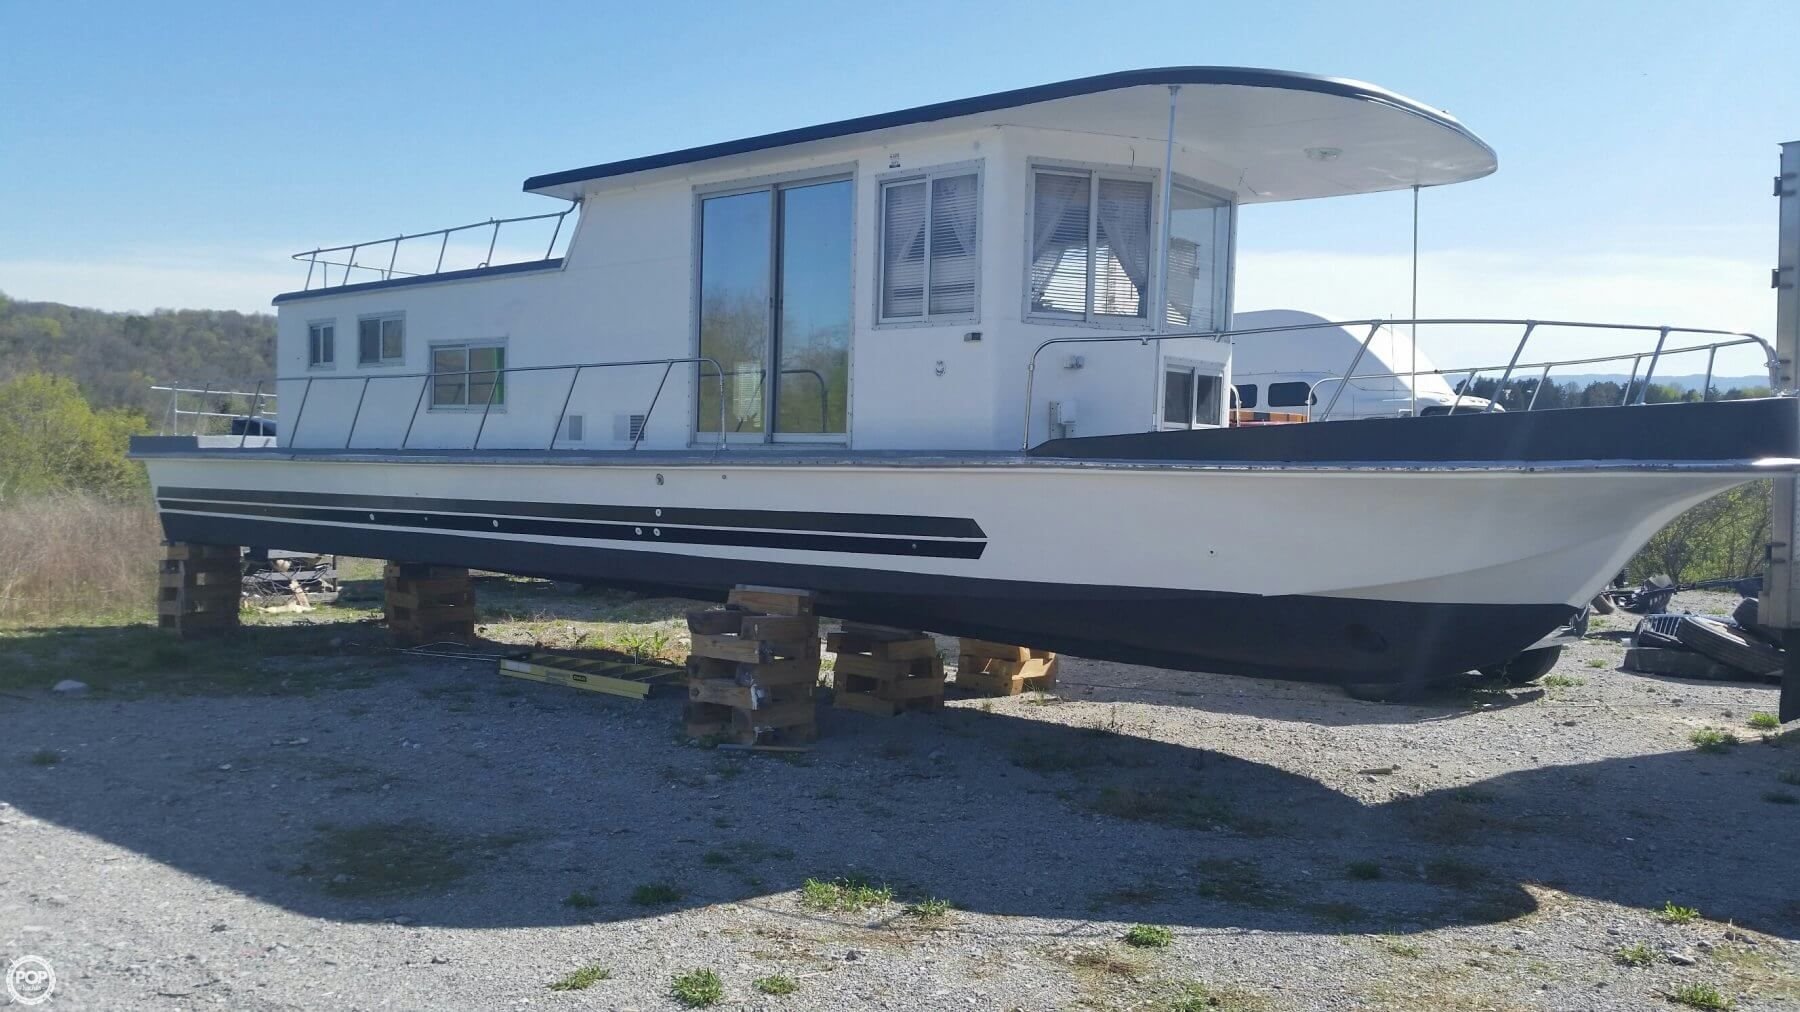 Completely refurbished inside and out, new hydraulic steering, new ...